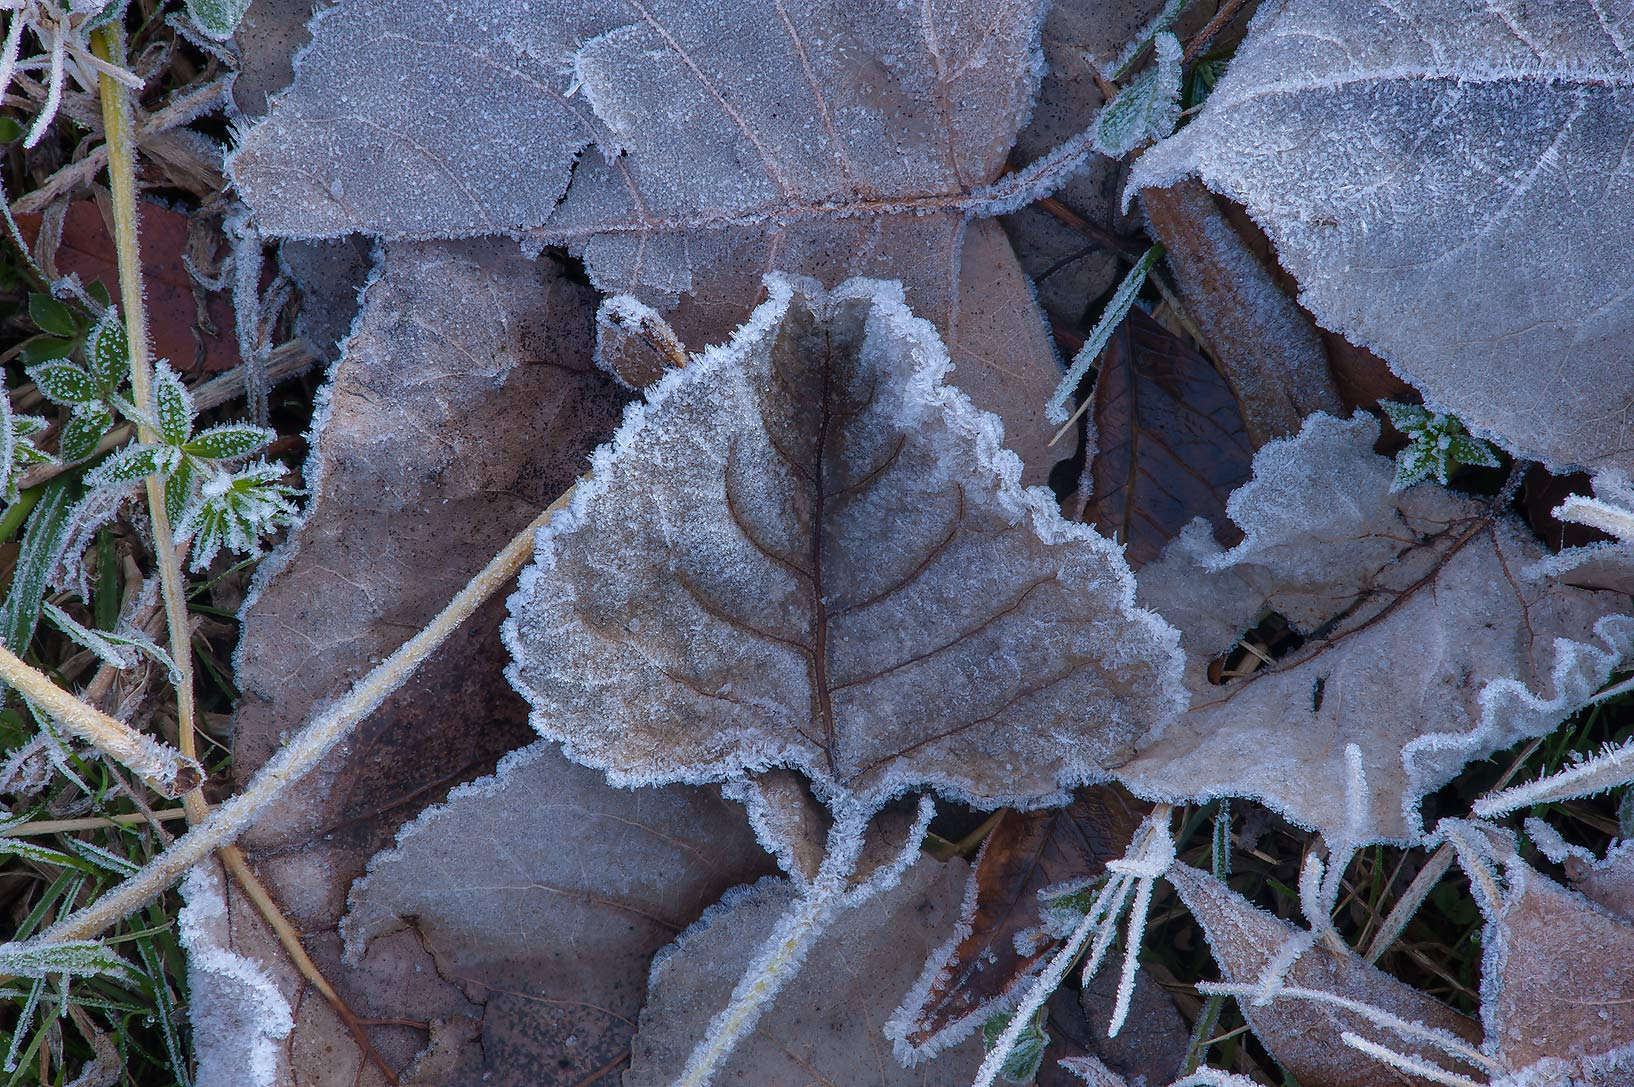 Morning freeze on dry fall leaves of Park Hudson Trail. Bryan, Texas